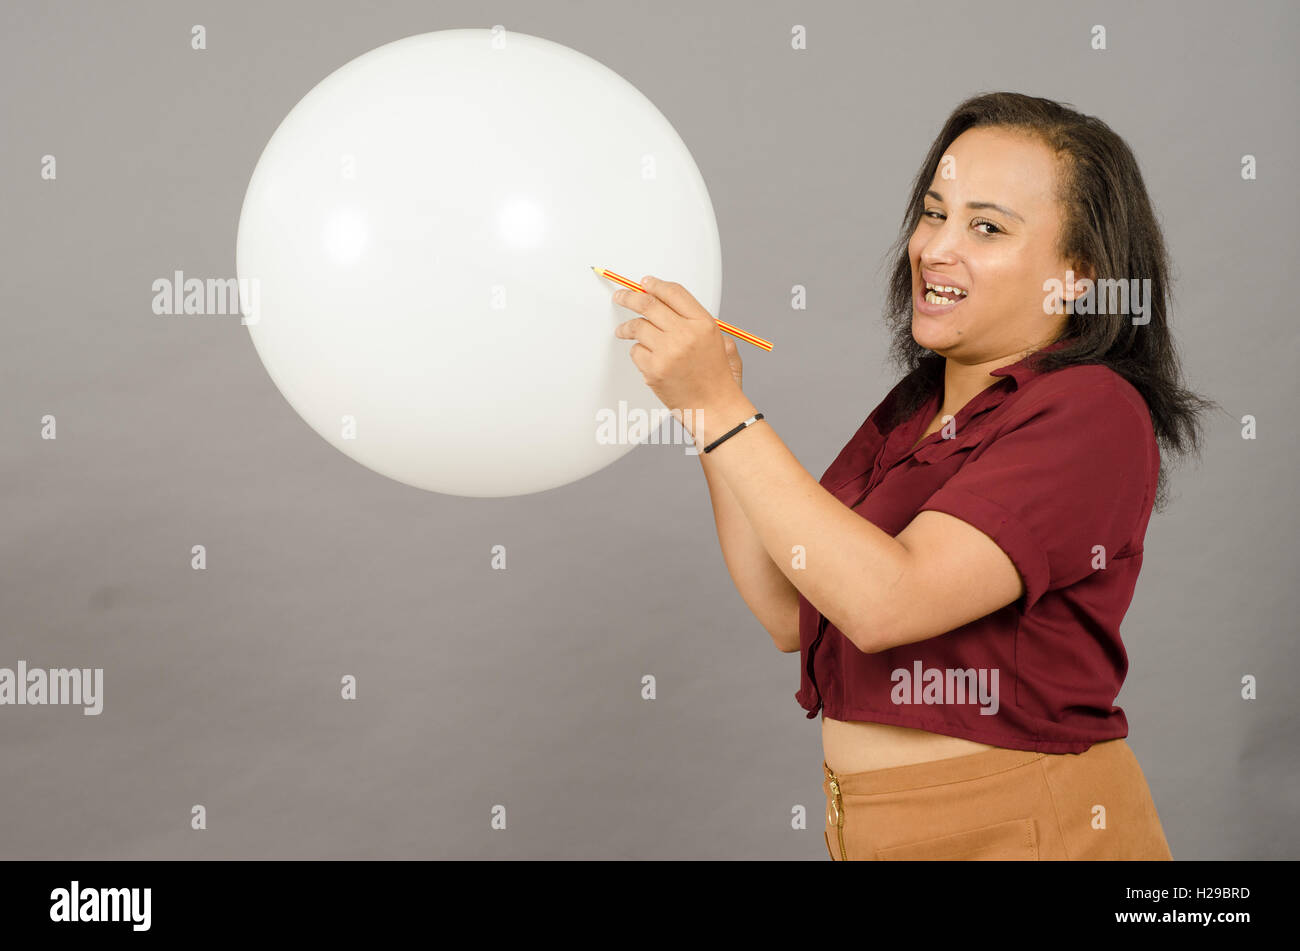 Adult woman bursting a big white balloon with a pencil. - Stock Image